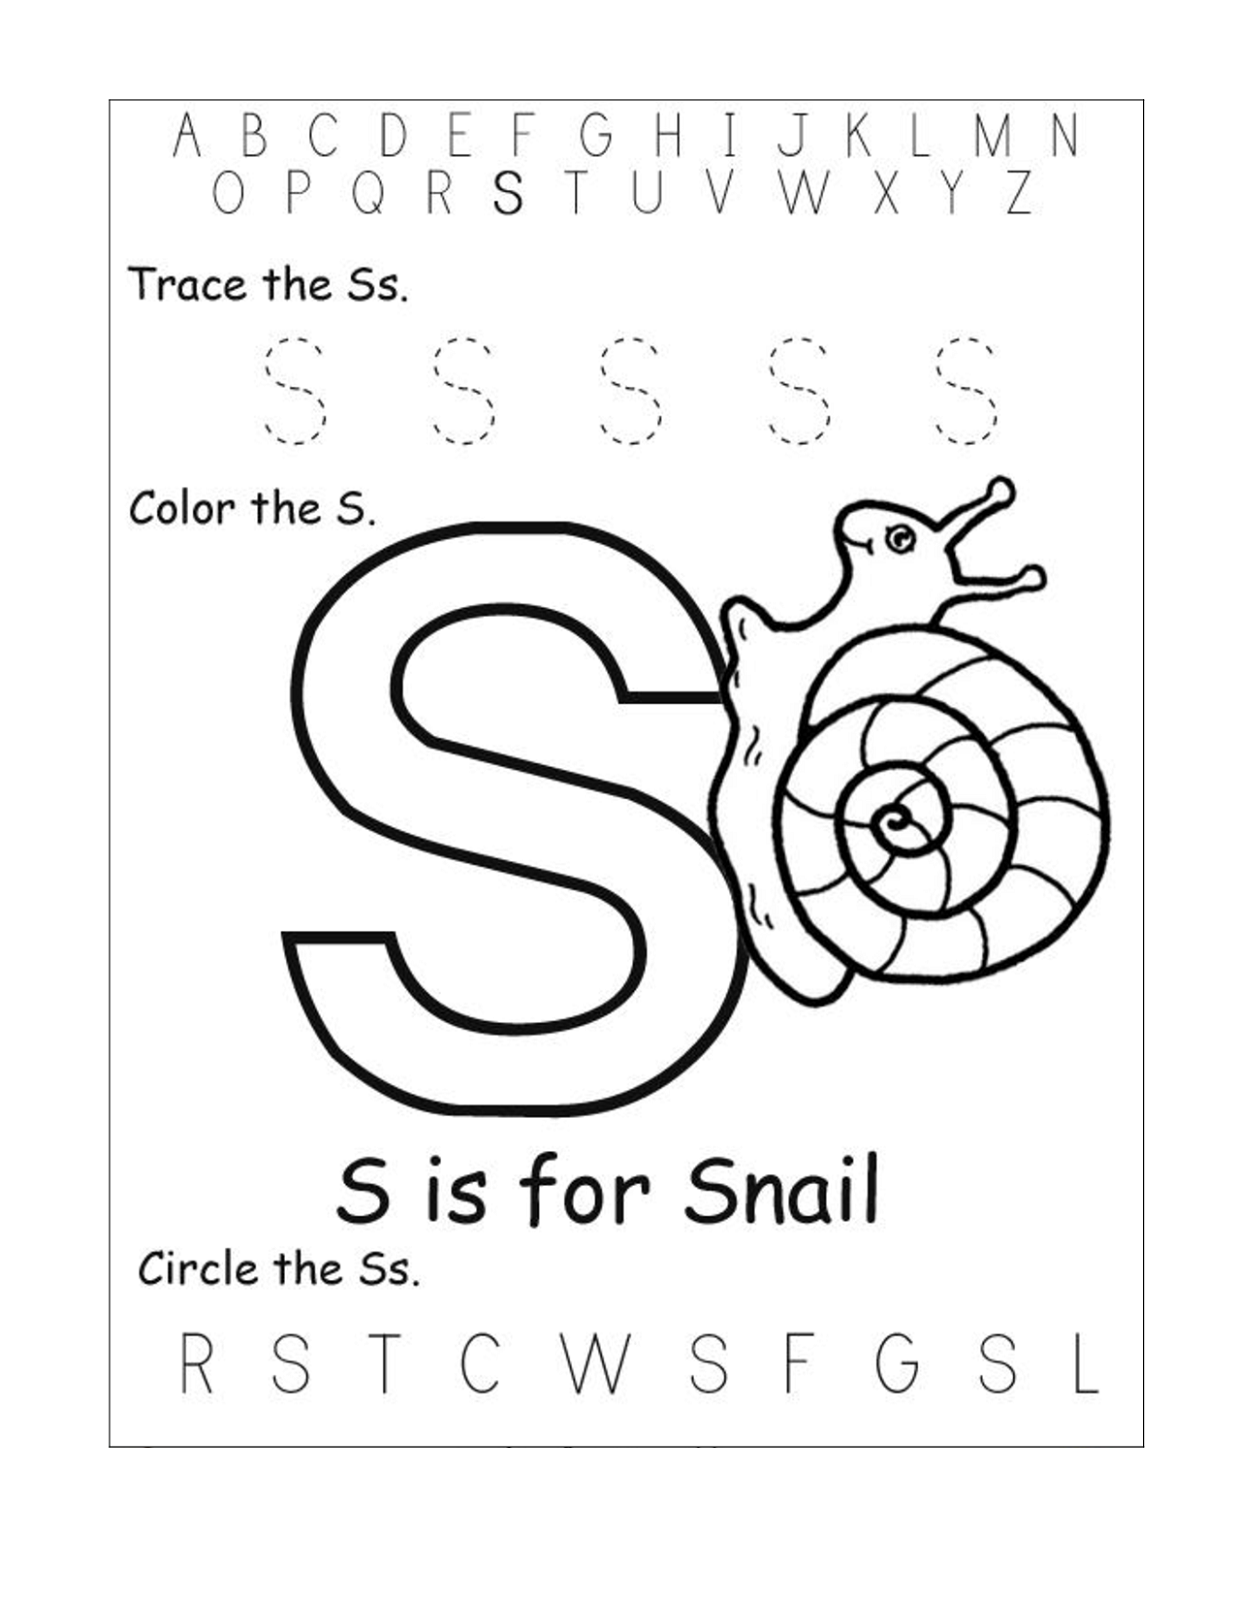 Worksheets Pre-k Worksheets Printables pre k drawing worksheets at getdrawings com free for personal use 1236x1600 kids printables worksheet math worksheets